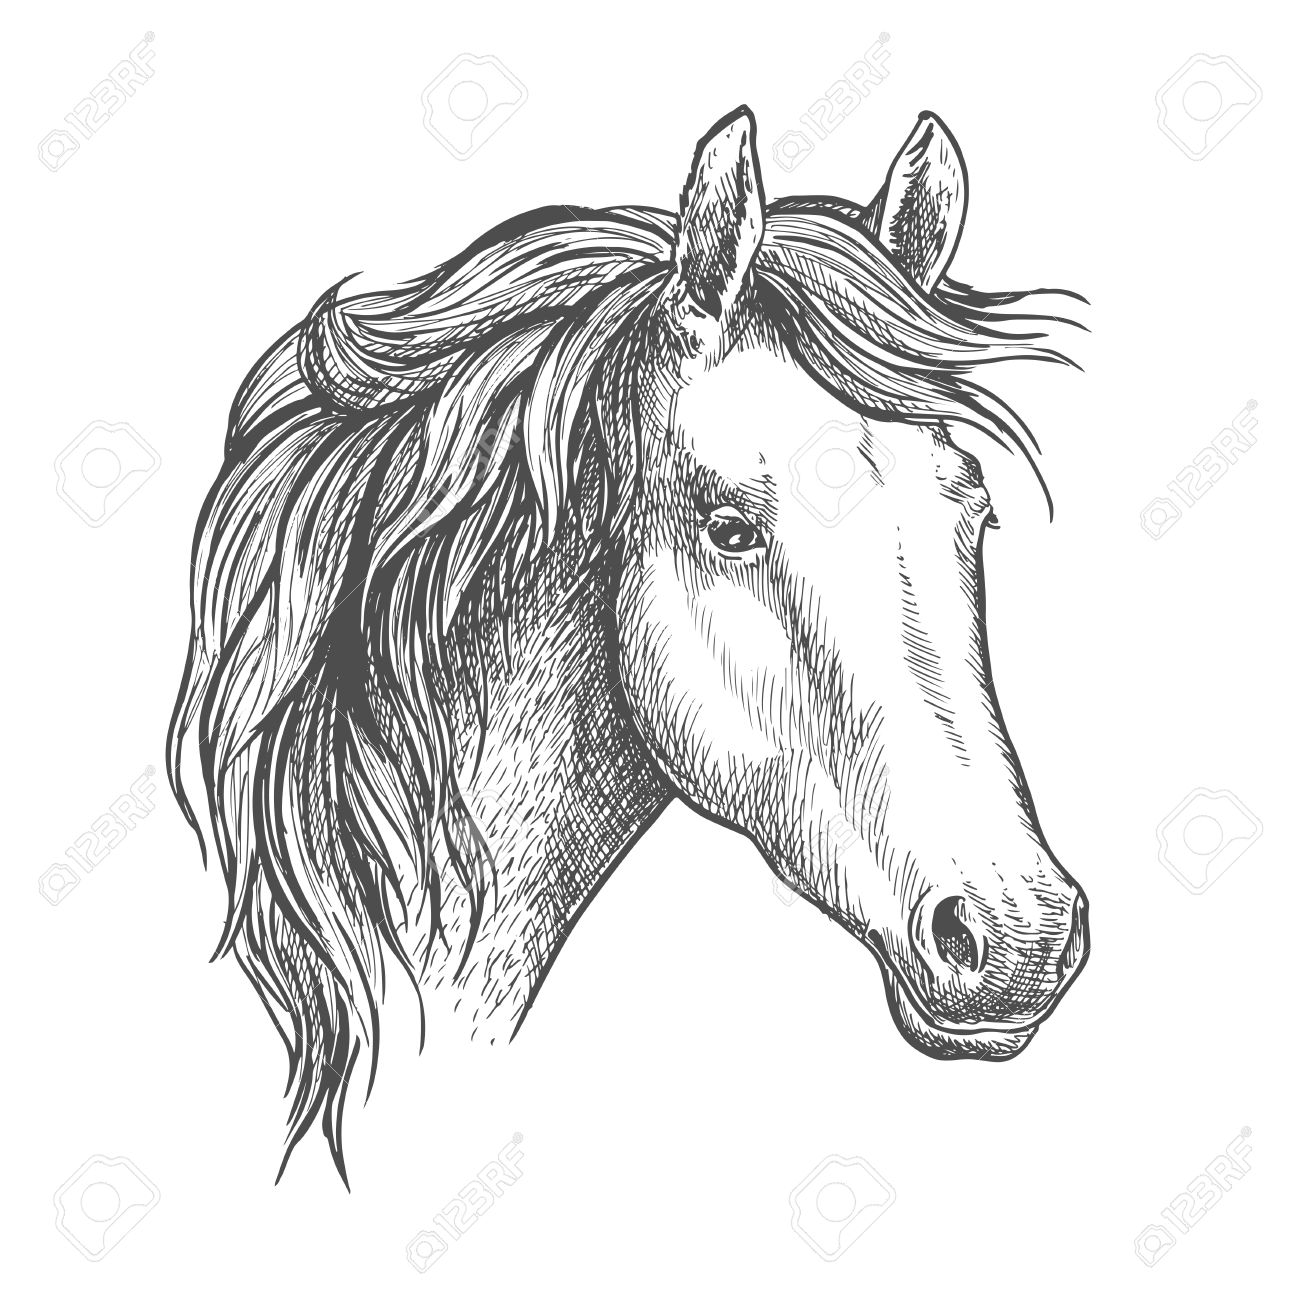 Arabian Horse Sketch Of A Head Of Purebred Mare Horse Racing Royalty Free Cliparts Vectors And Stock Illustration Image 60305306